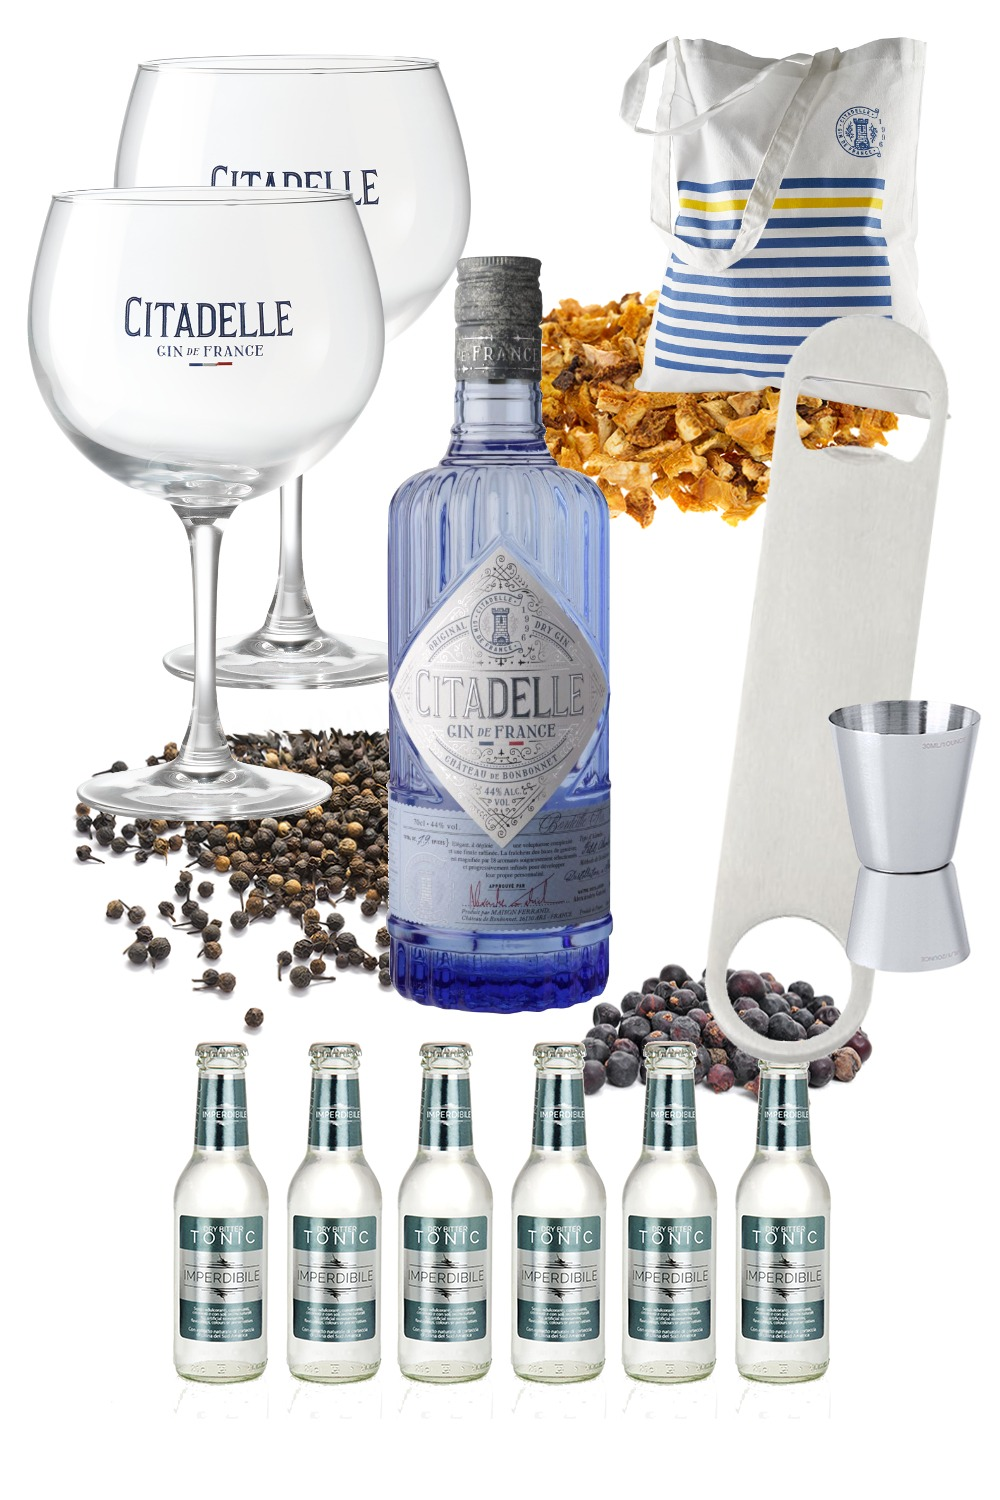 Citadelle – Mission Ginpossible